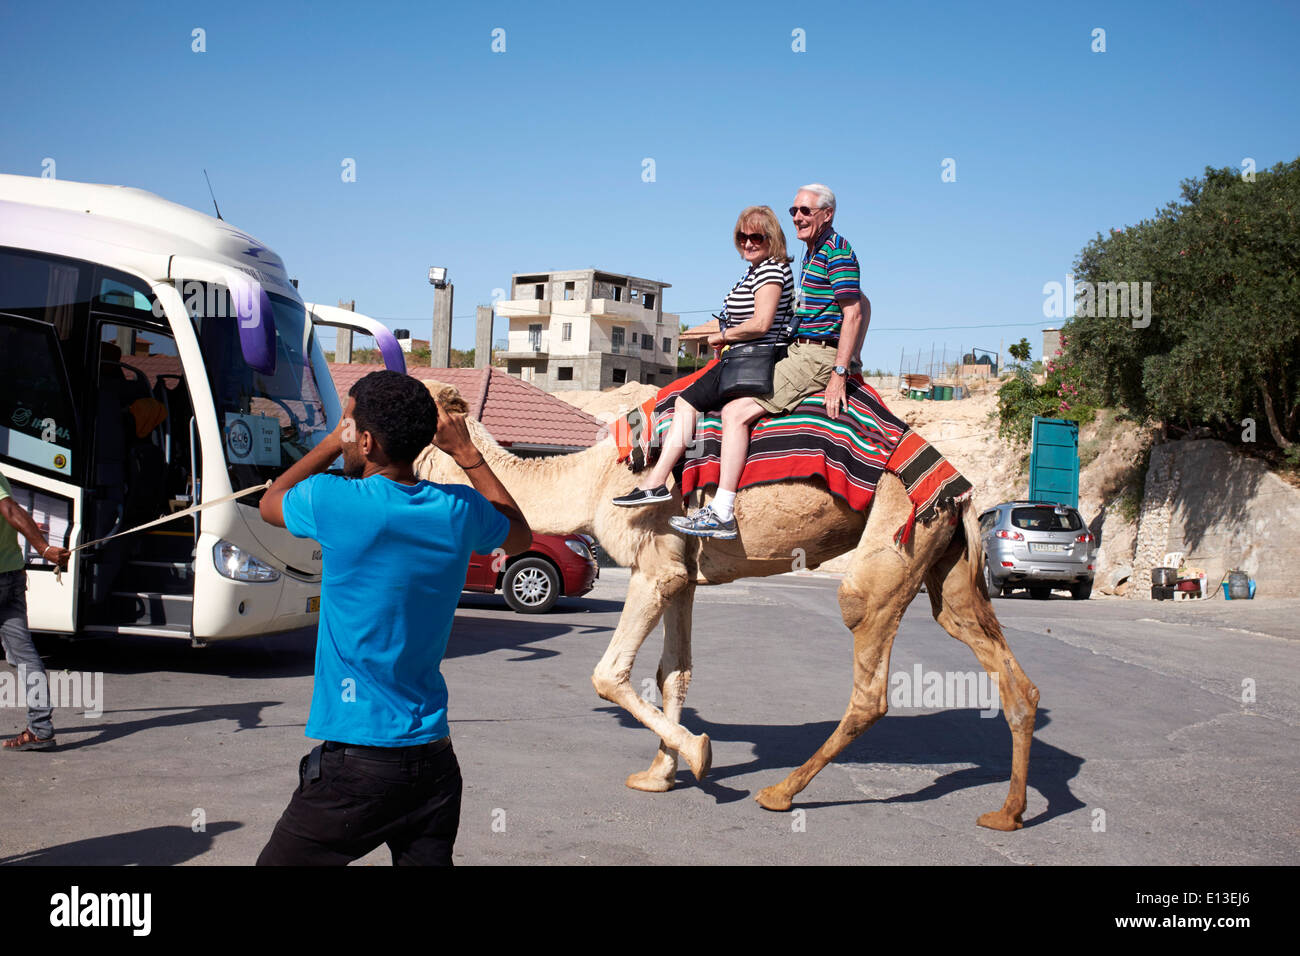 A Couple on a camel ride in Jericho, Israel, West Bank - Stock Image